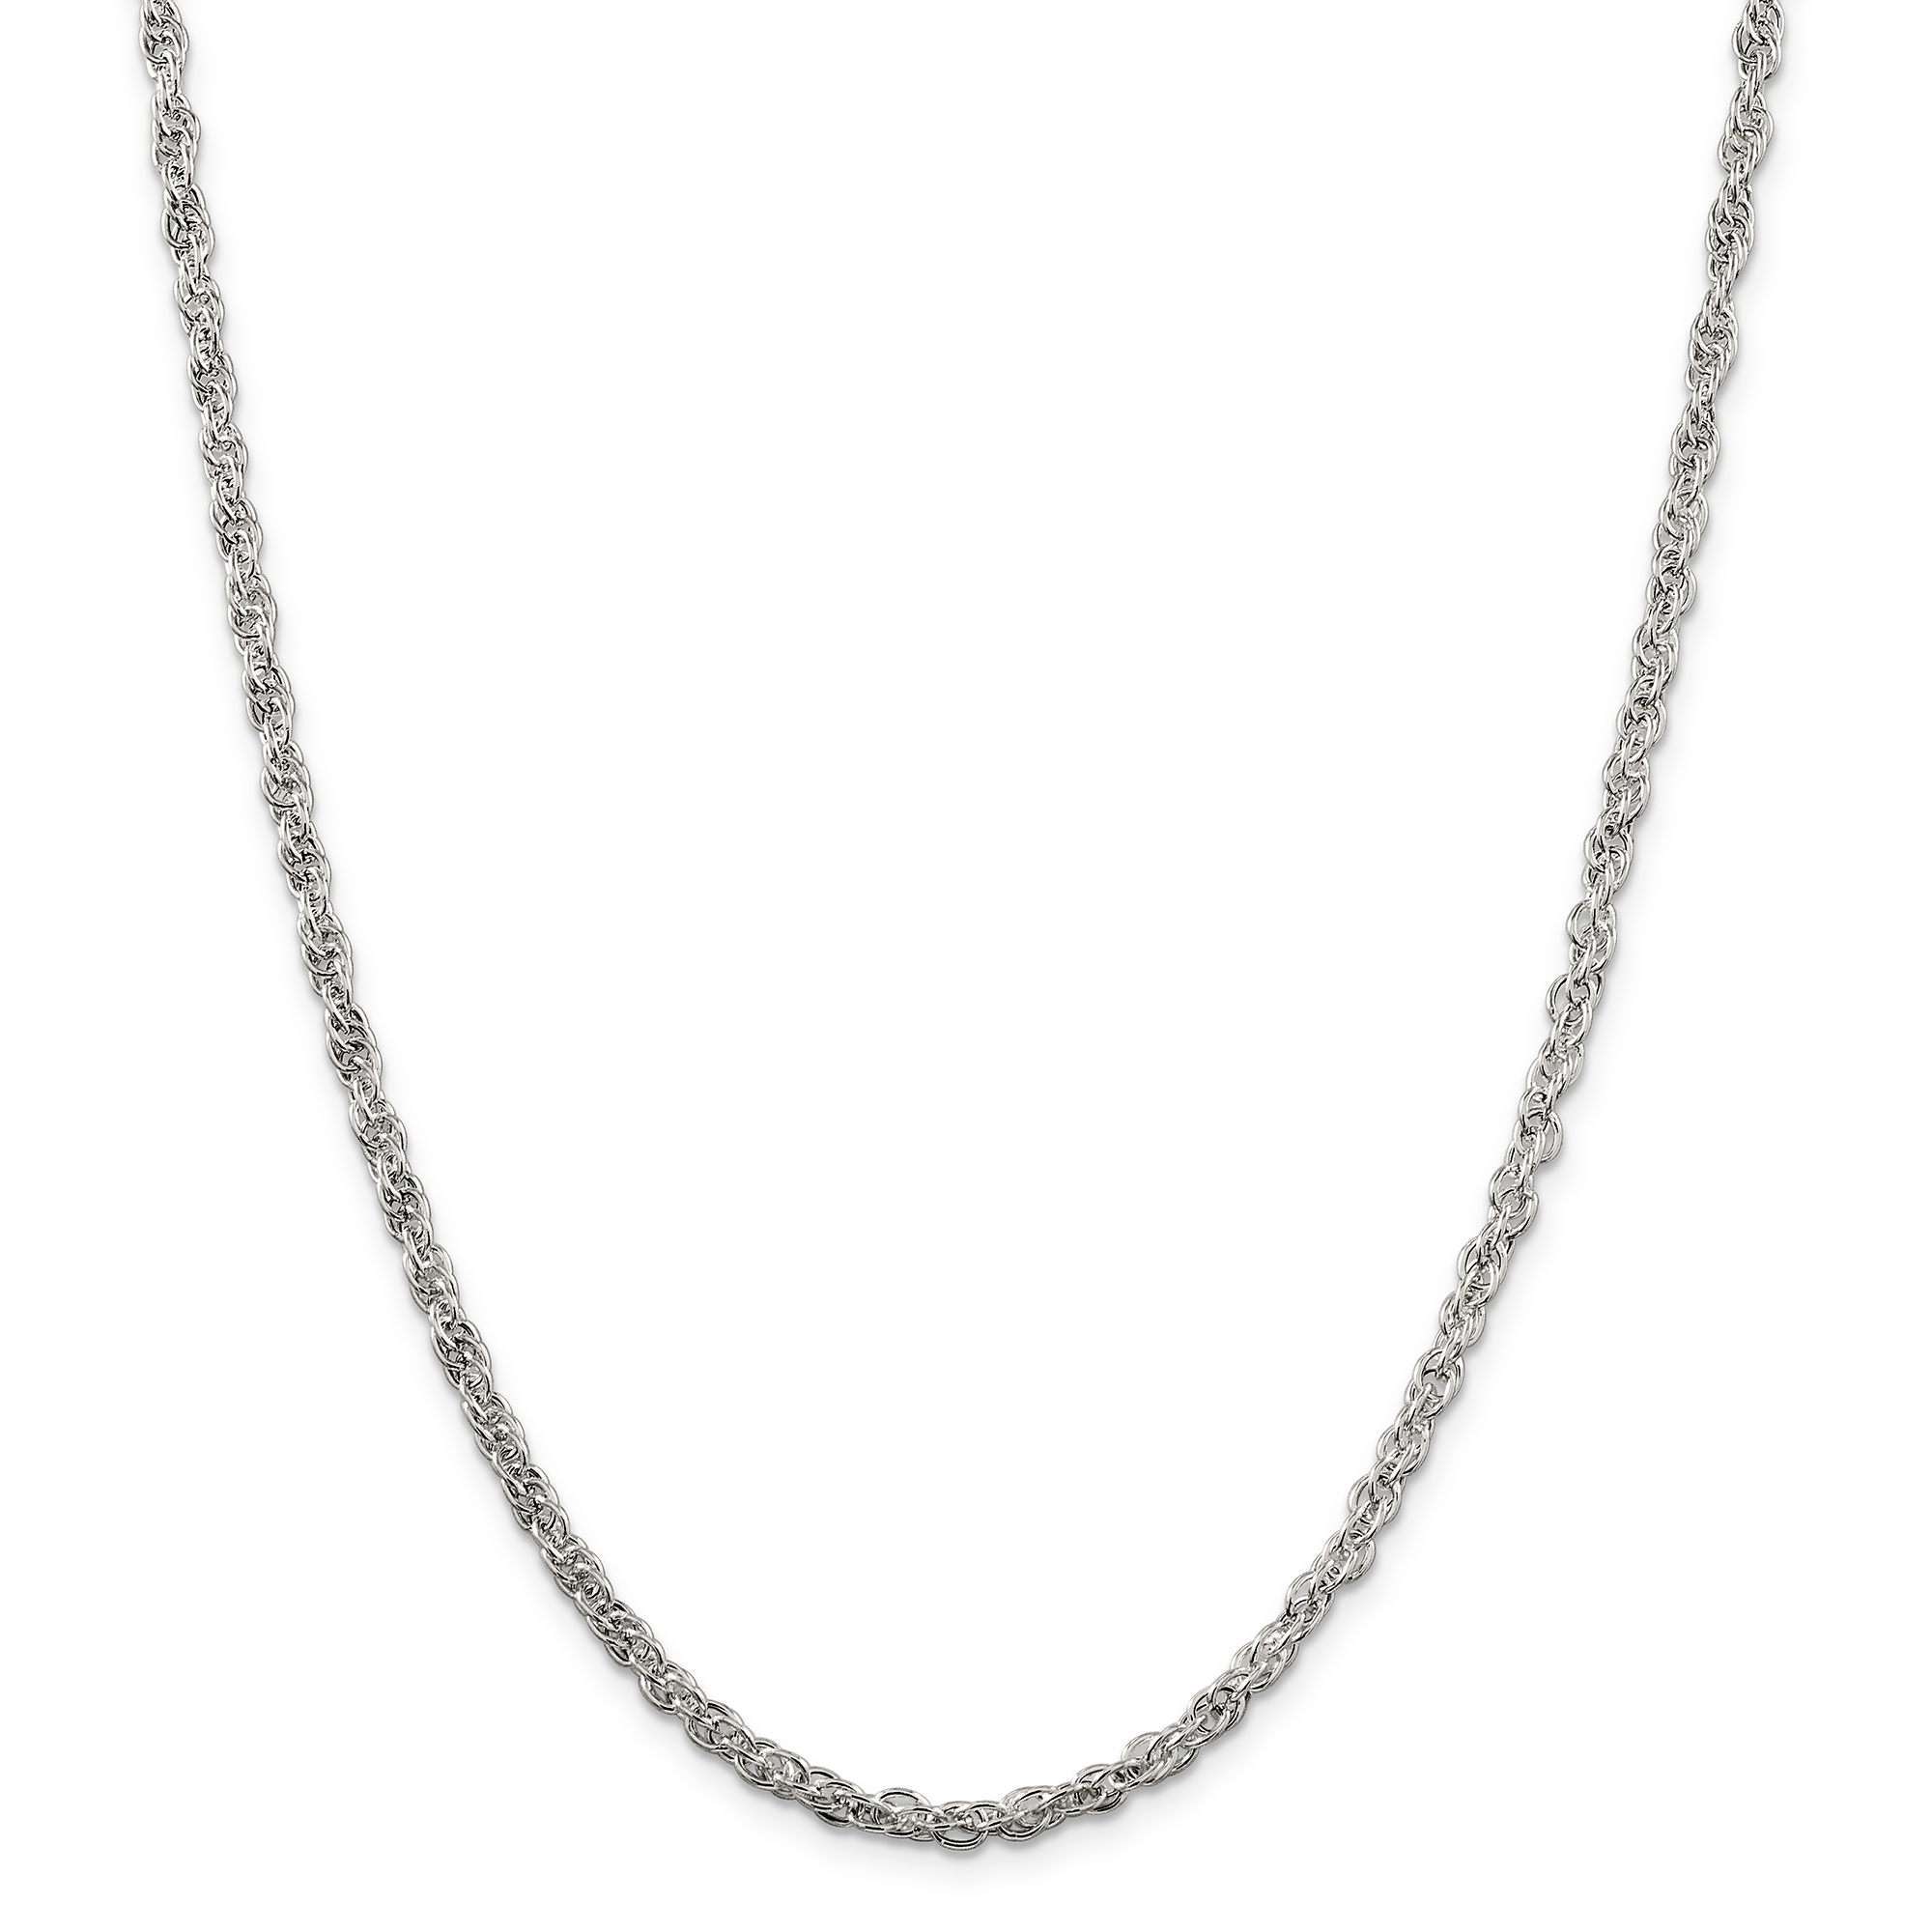 925 Sterling Silver 4mm Hollow Loose Rope Chain 24 Inch - image 5 de 5